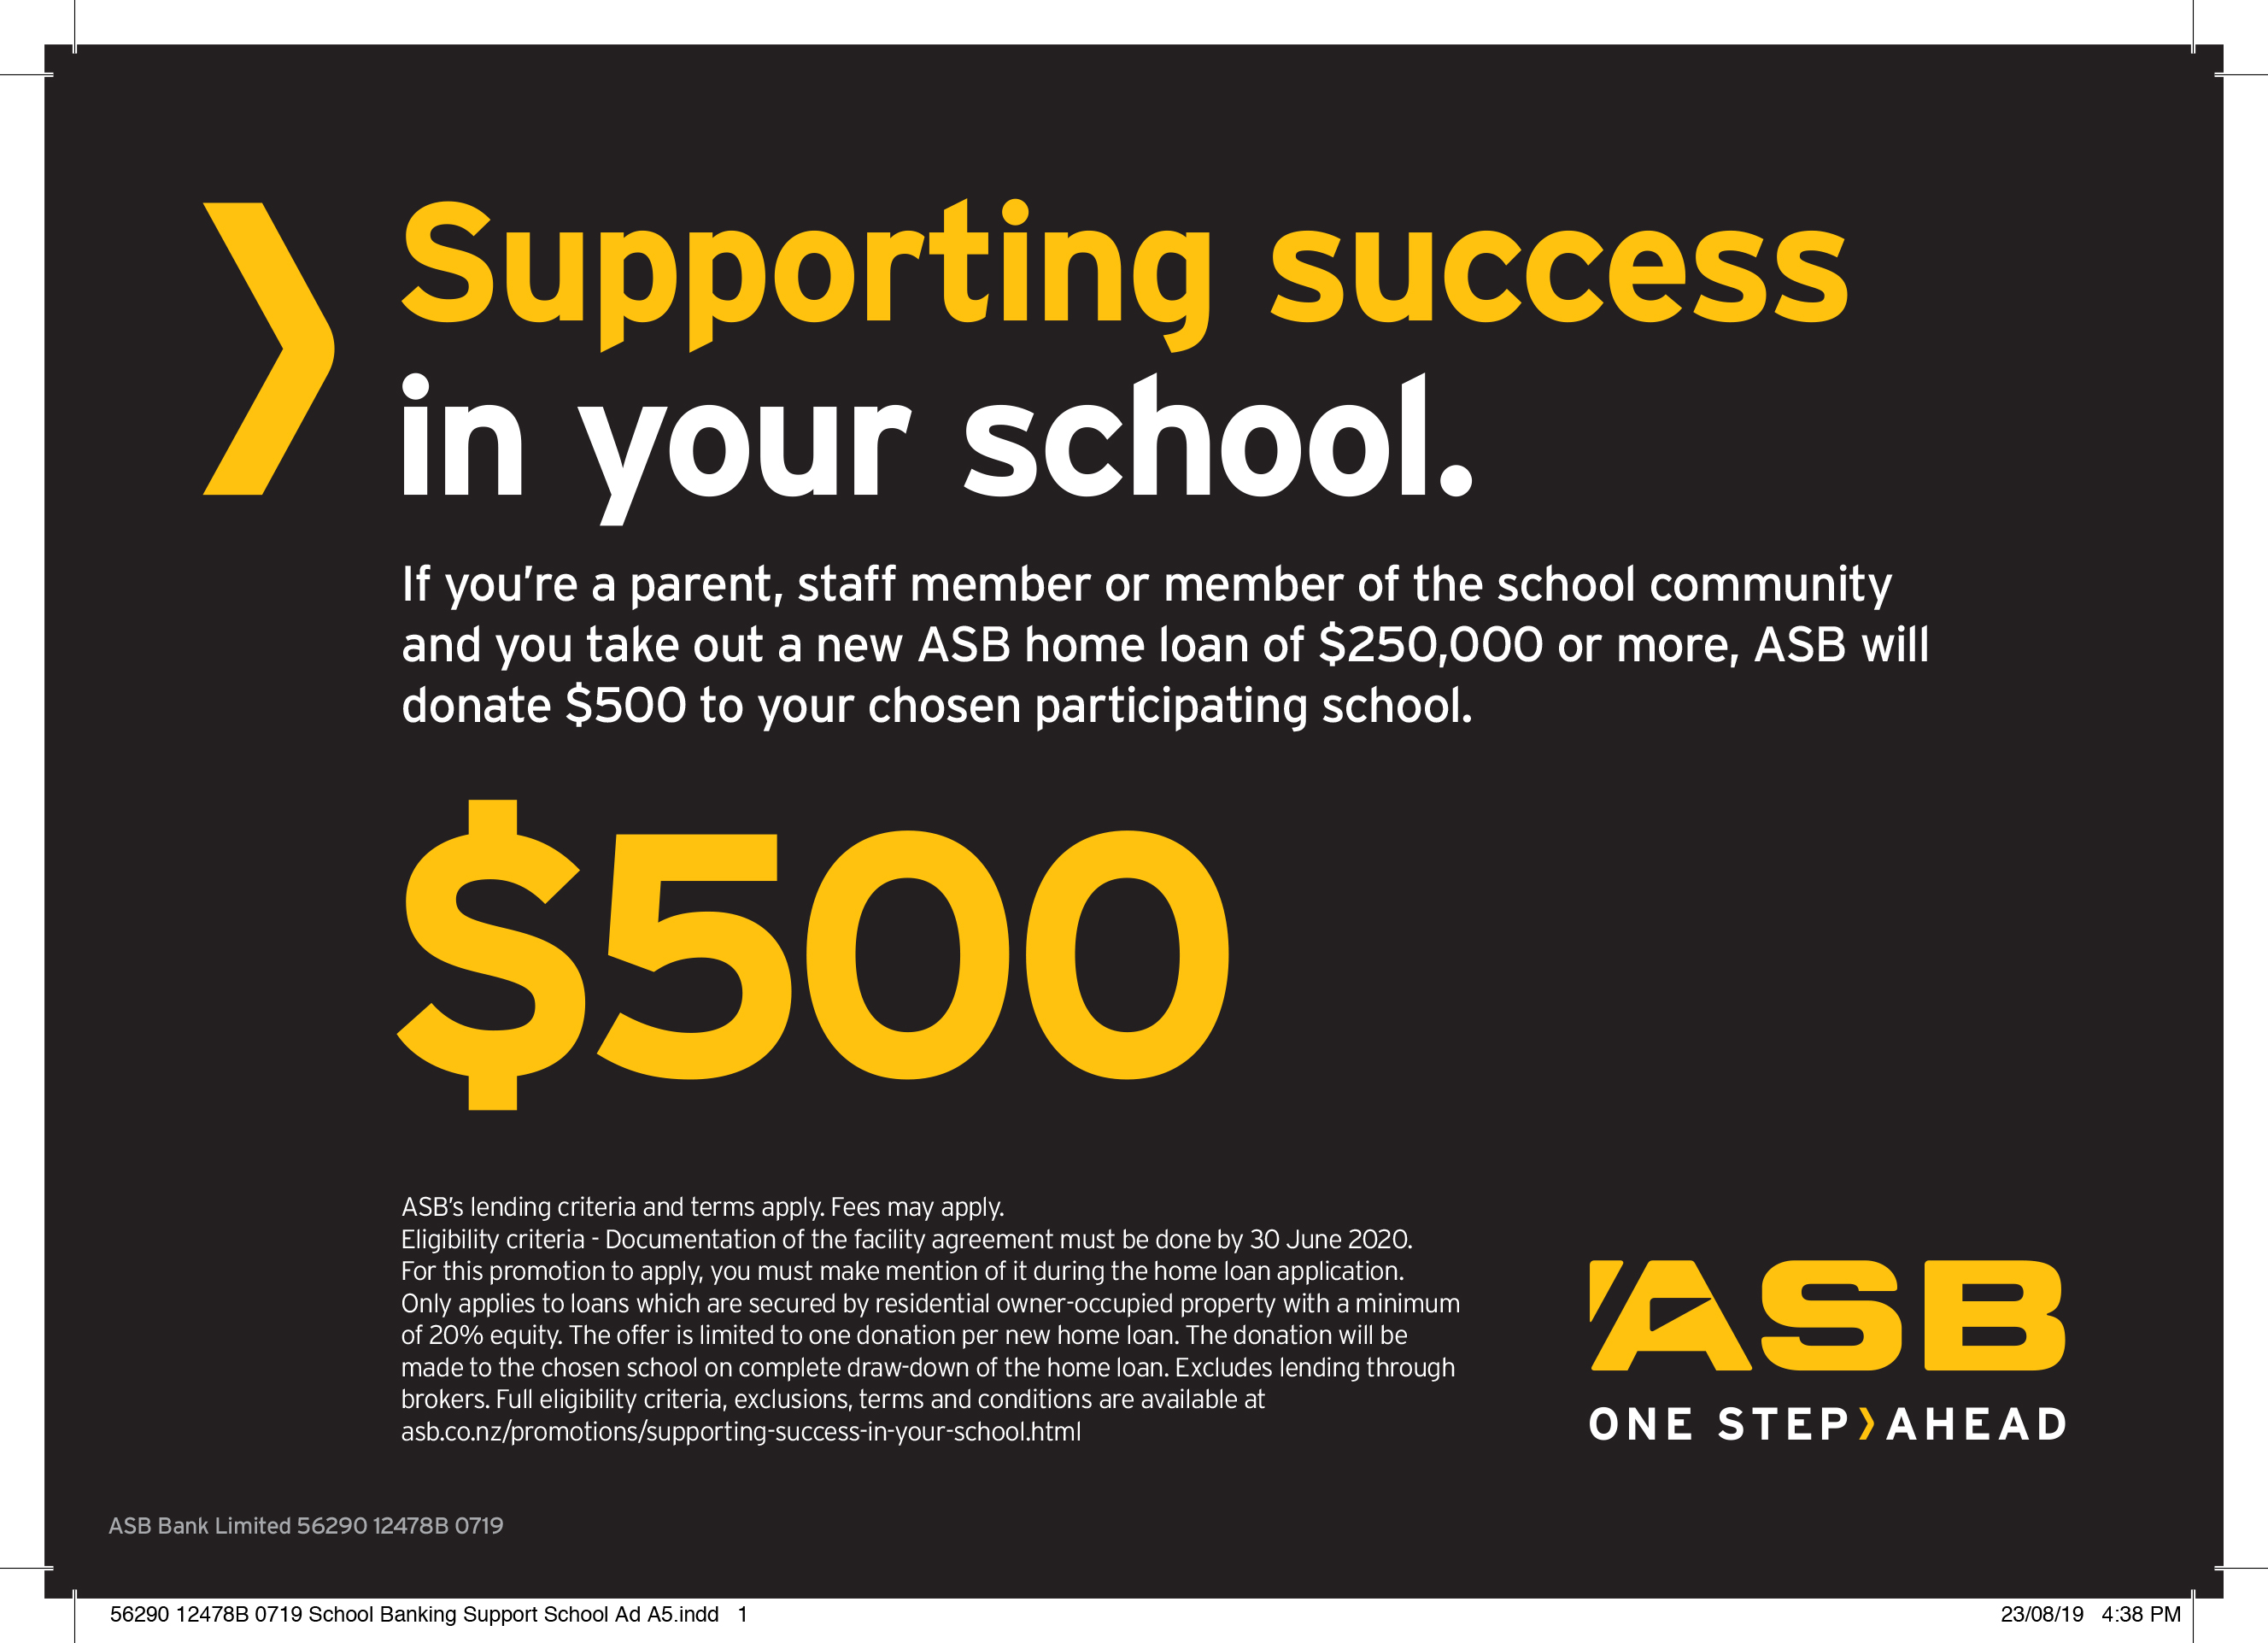 Supporting Success at Springs – $500.00!